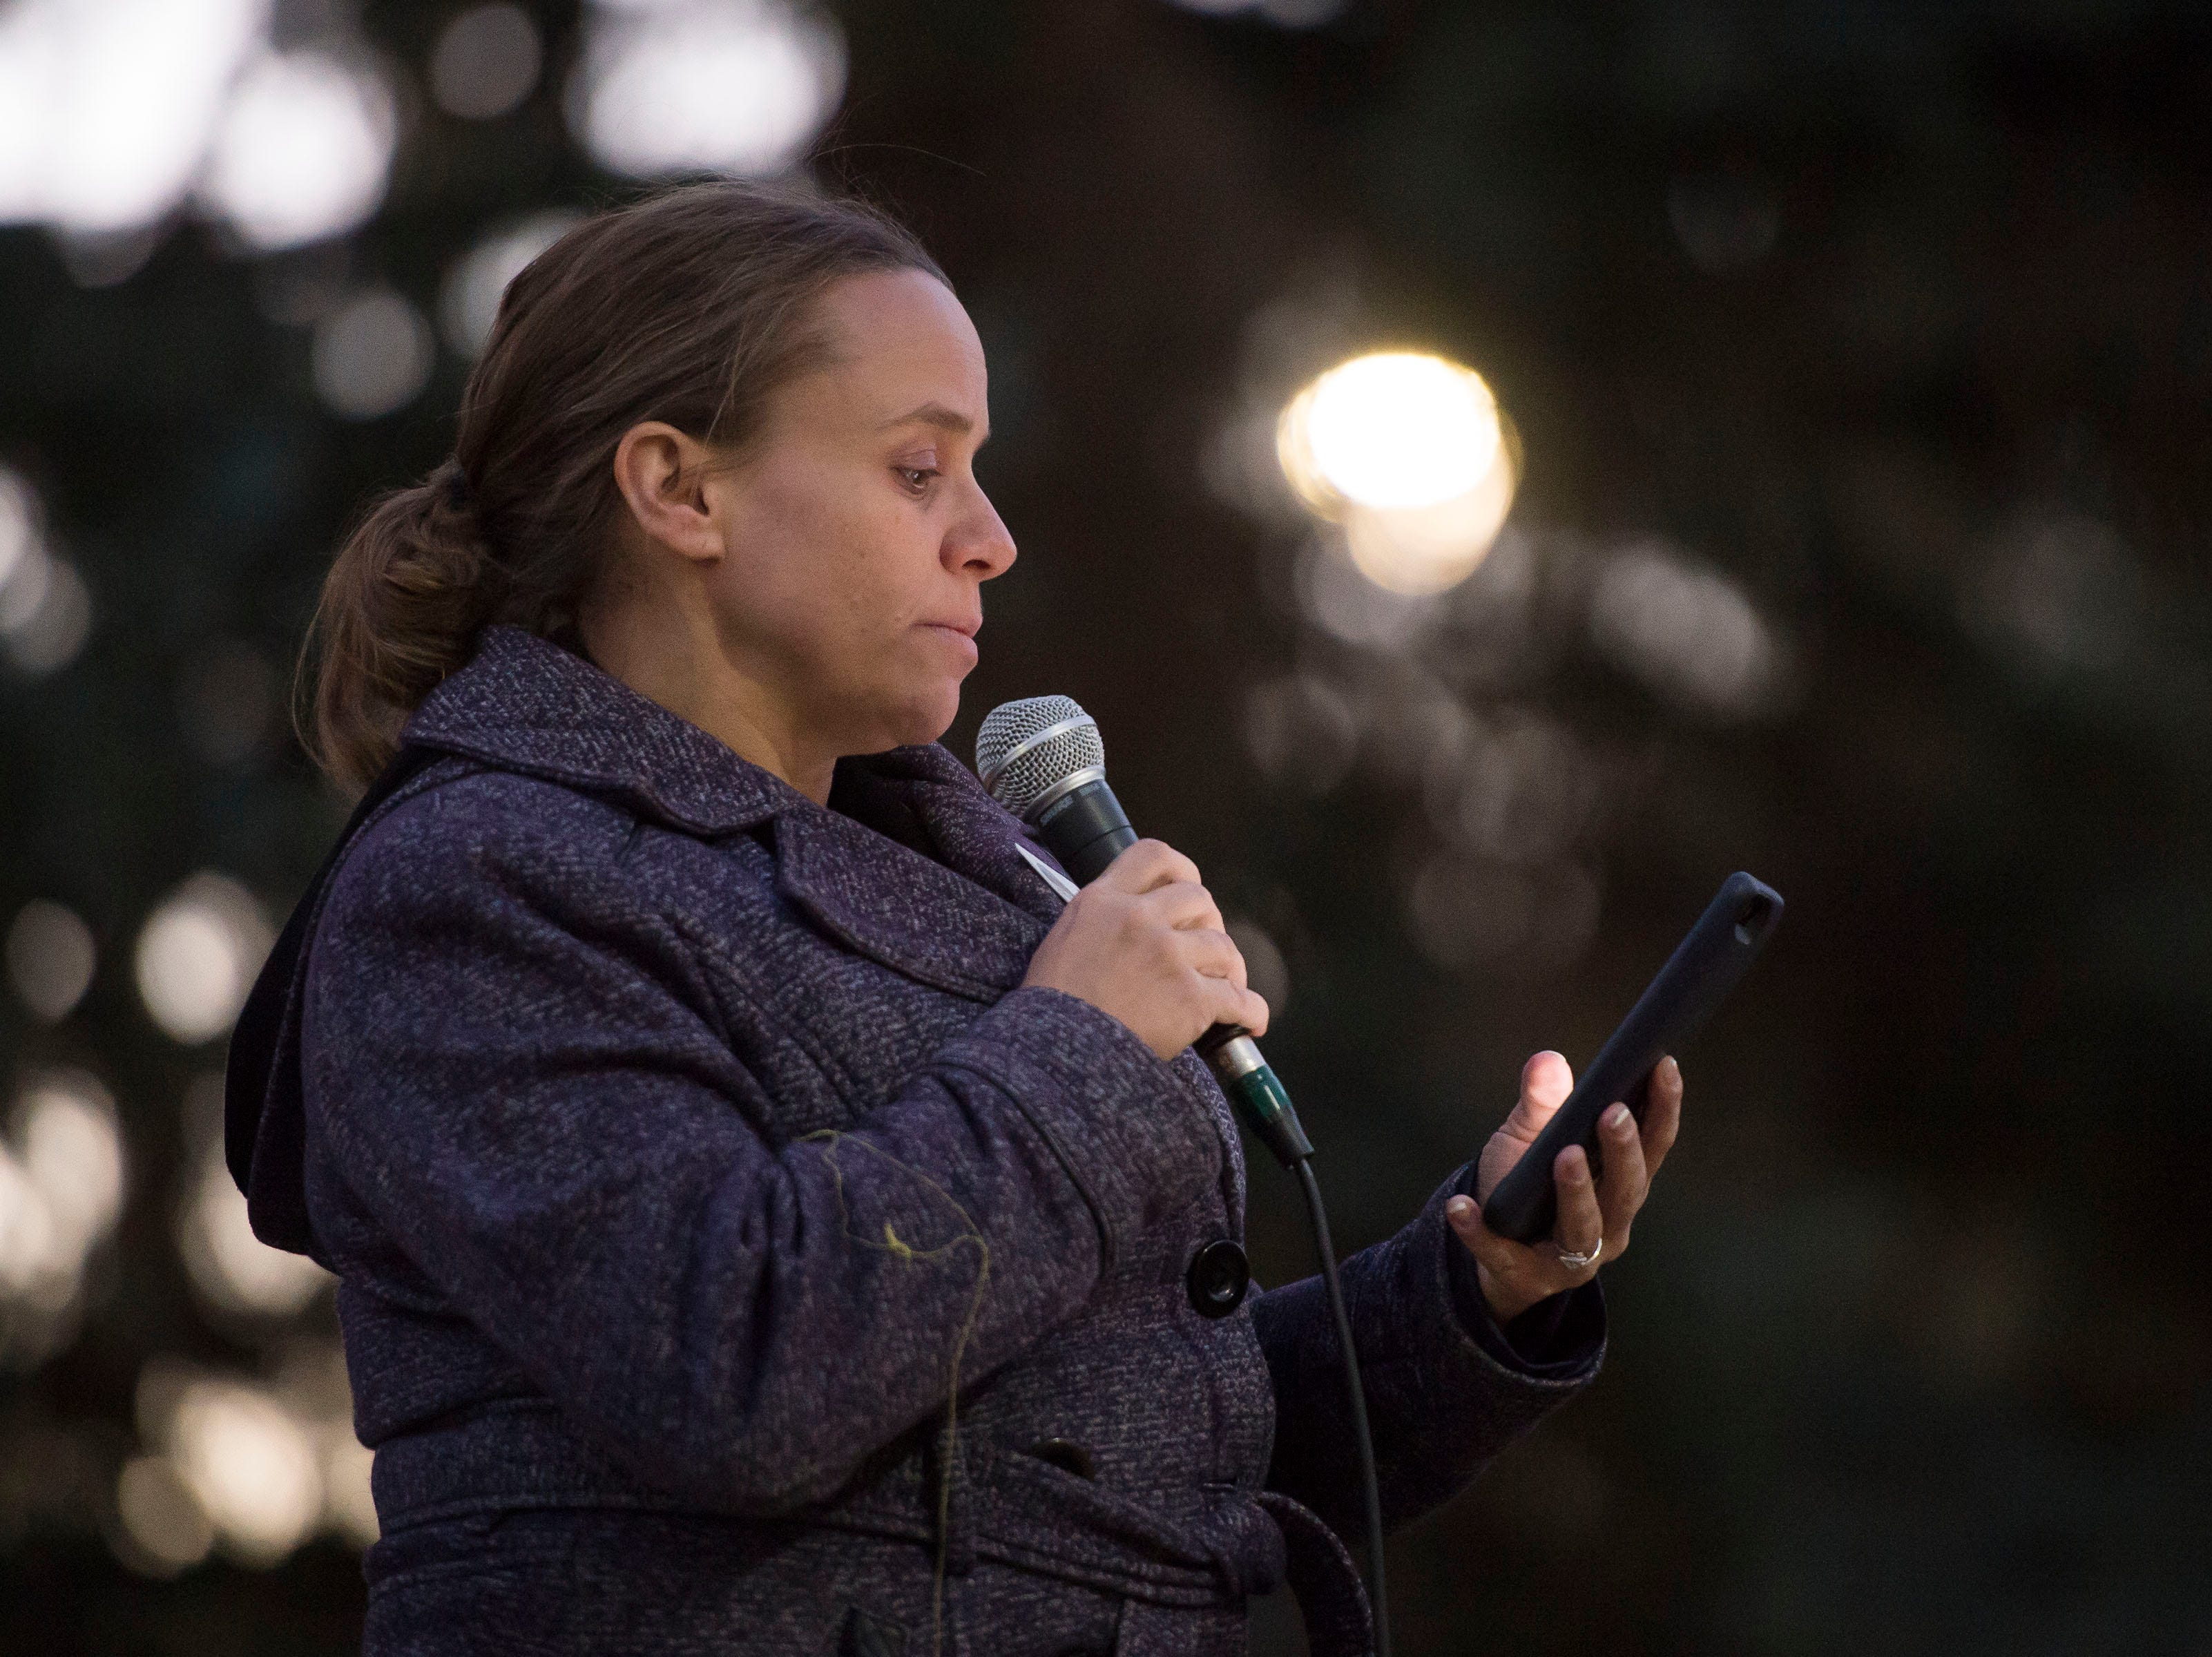 Laramie Mayor Andi Summerville speaks to the crowd during a candlelight vigil on the 20th anniversary of Matthew Shepard's death on Friday, Oct. 12, 2018, at Prexy's Pasture on the University of Wyoming campus in Laramie, Wyo.